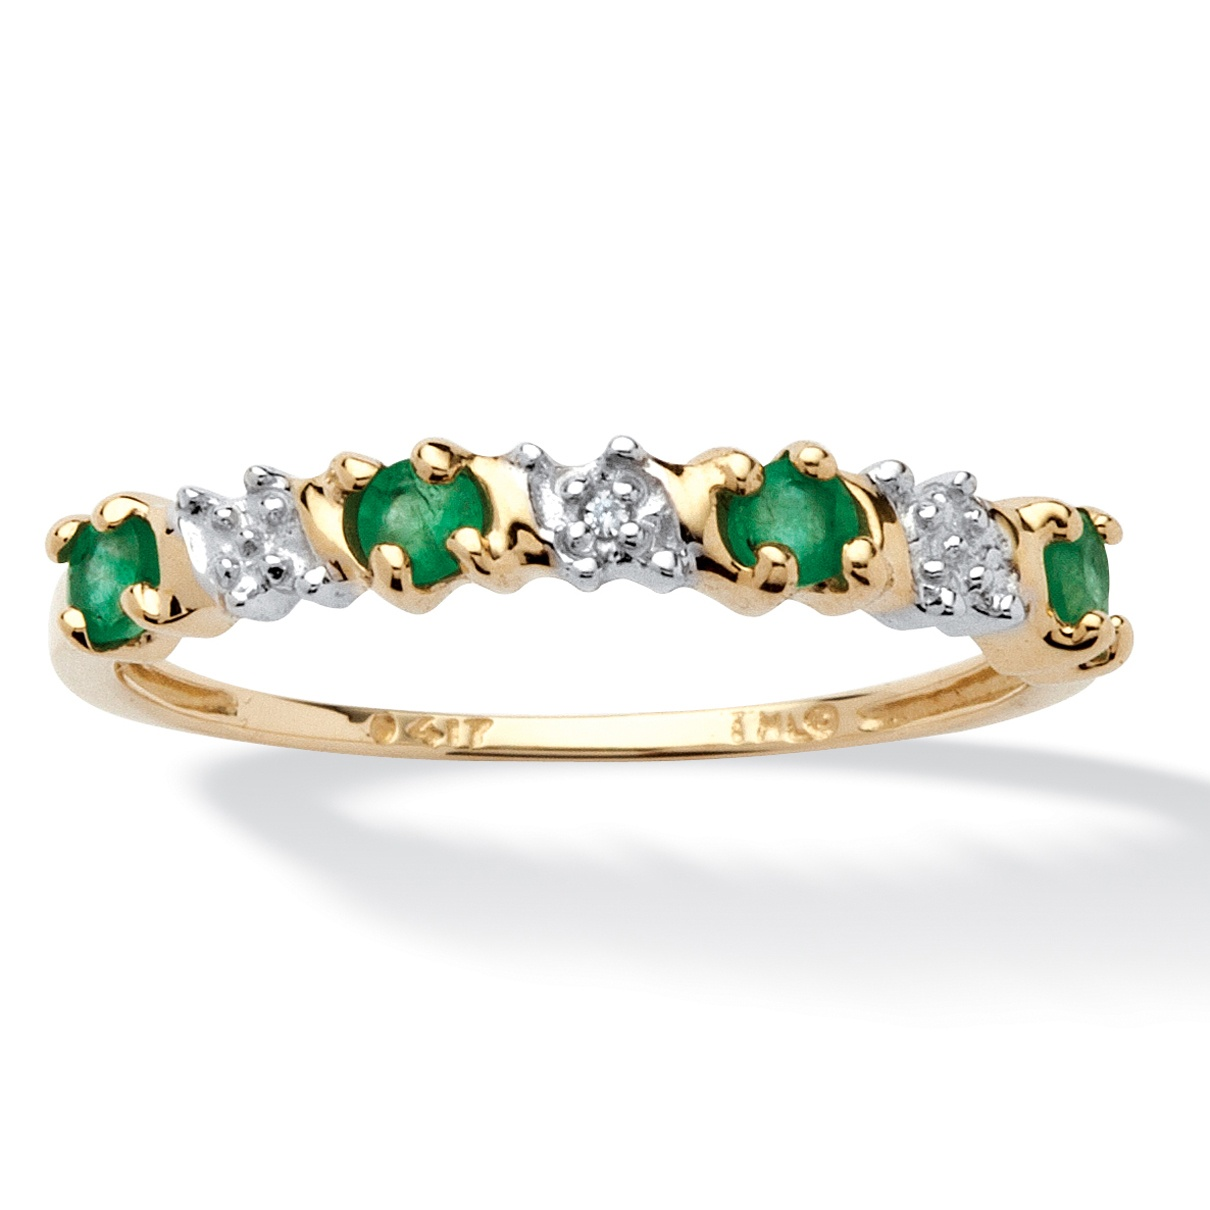 palmbeach jewelry 32 tcw genuine emerald and